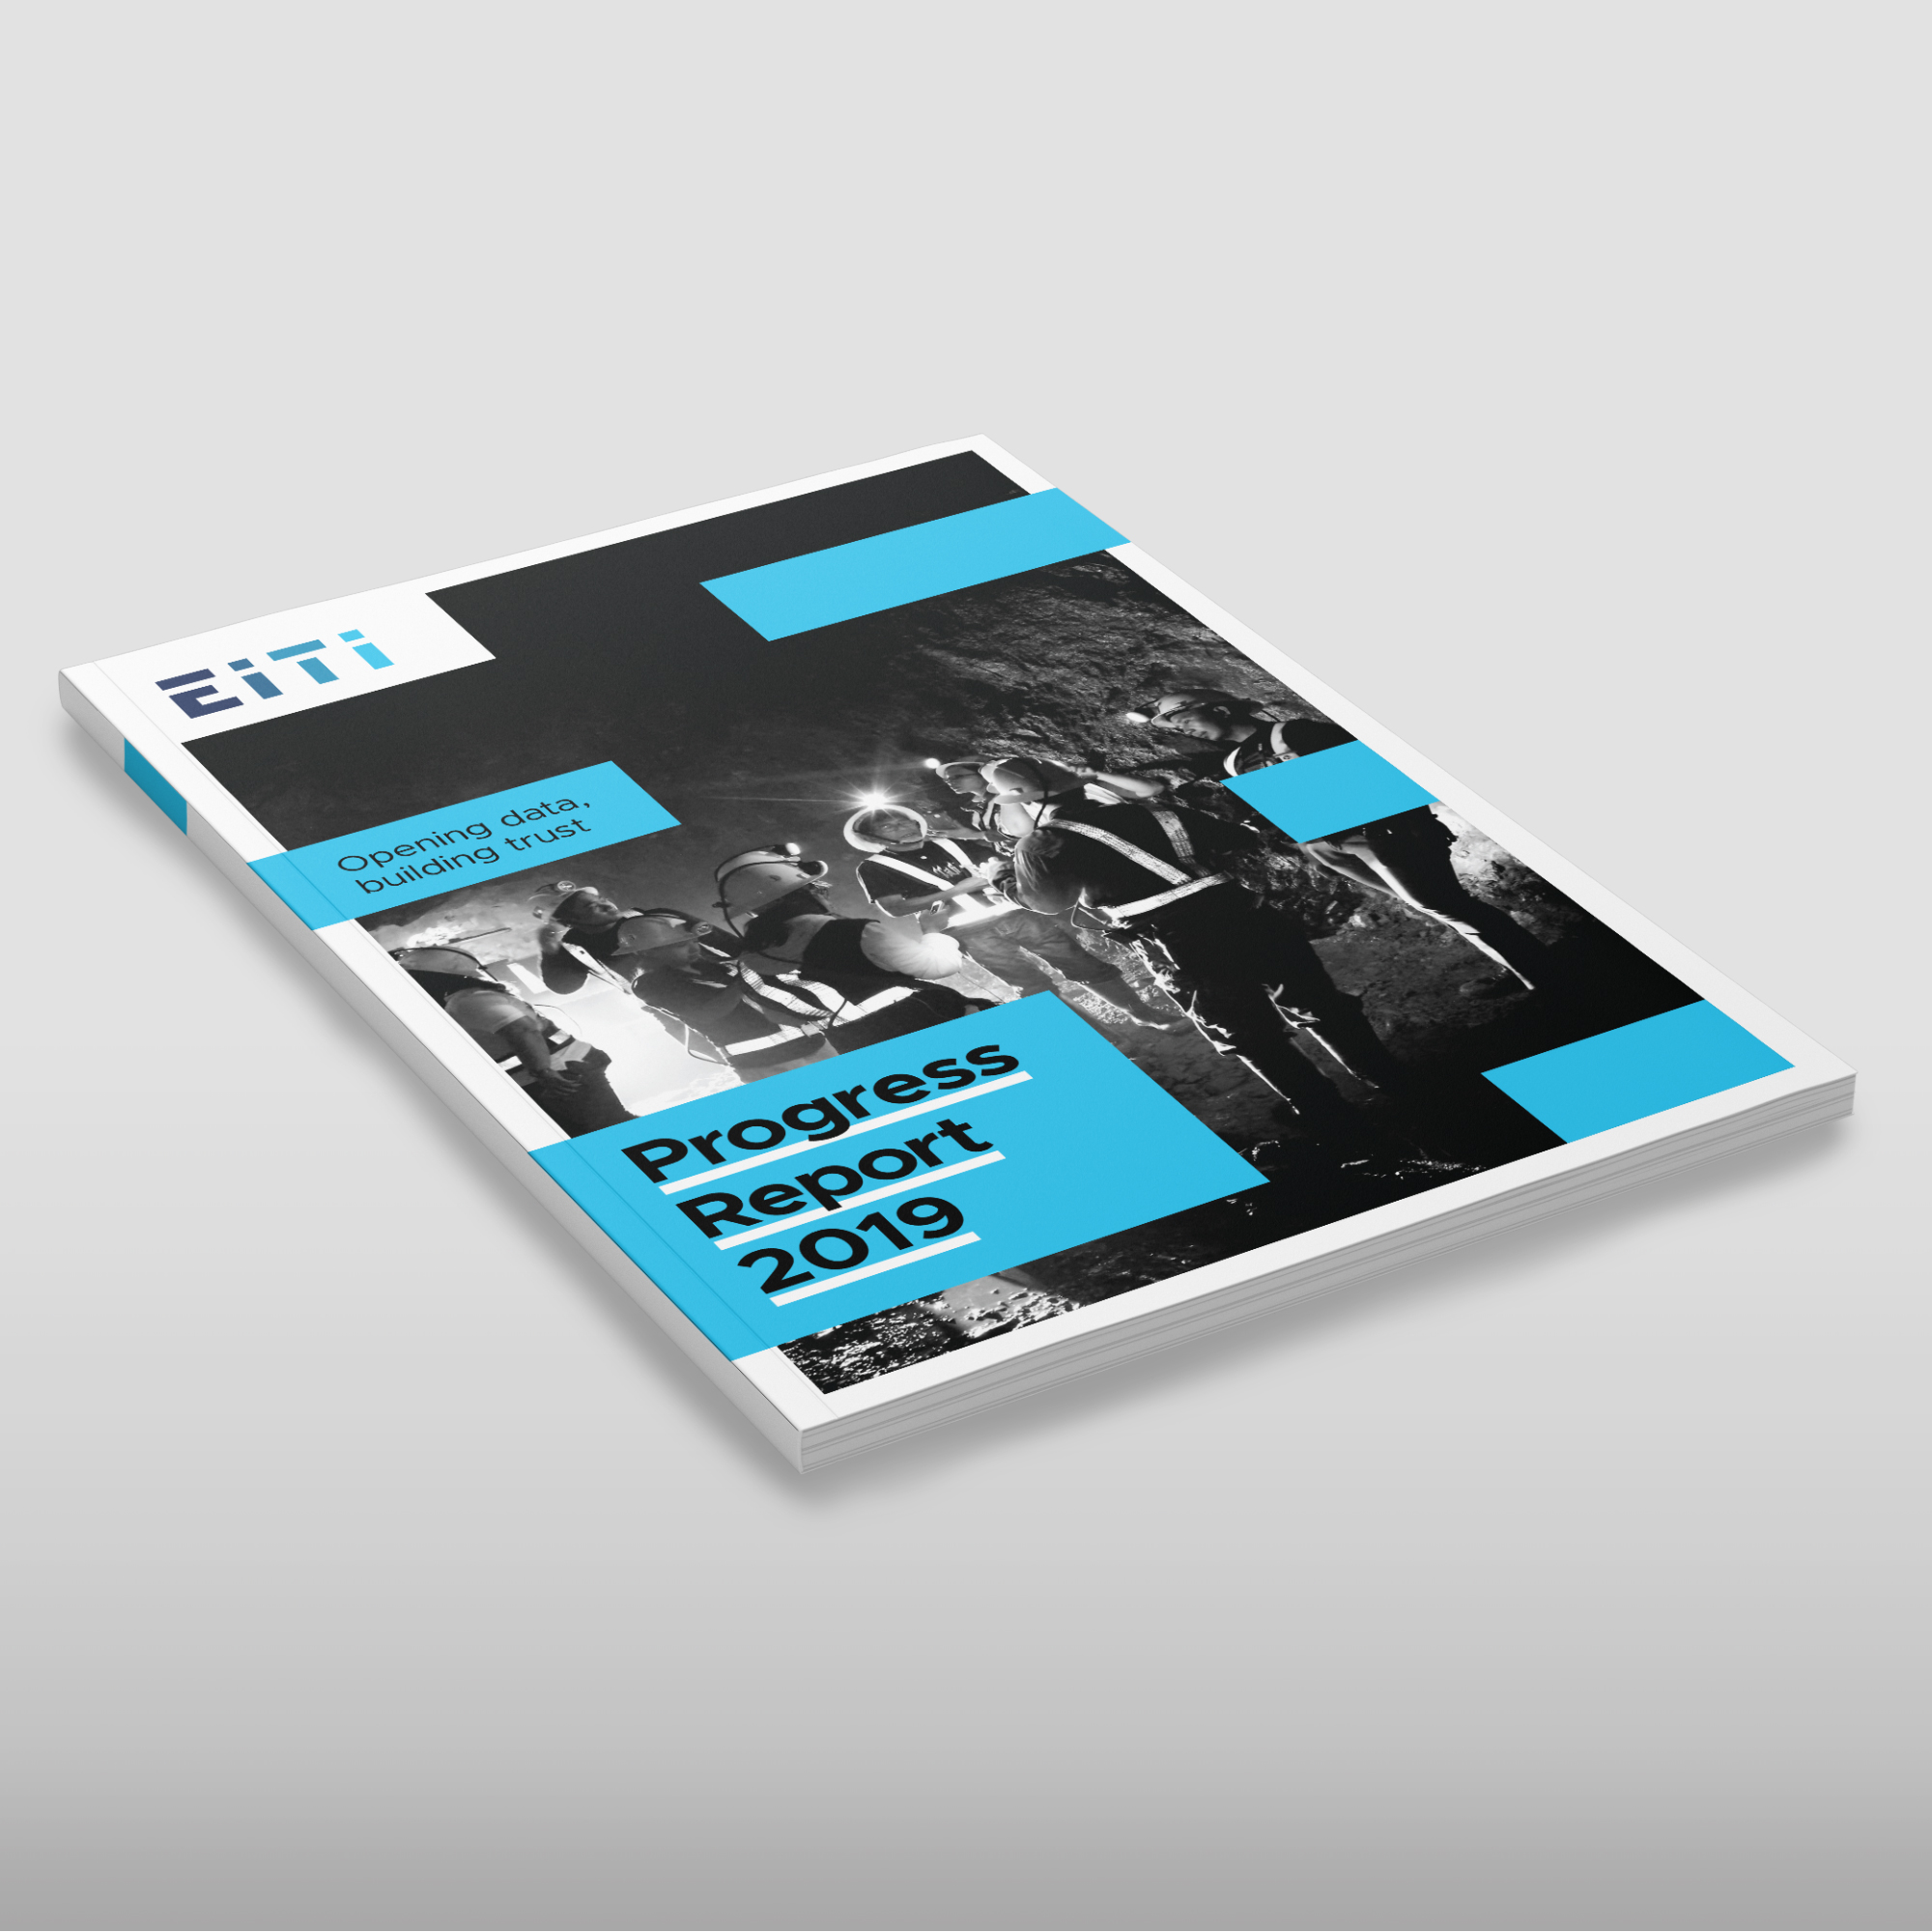 EITI-Report_Website-images-cover.jpg